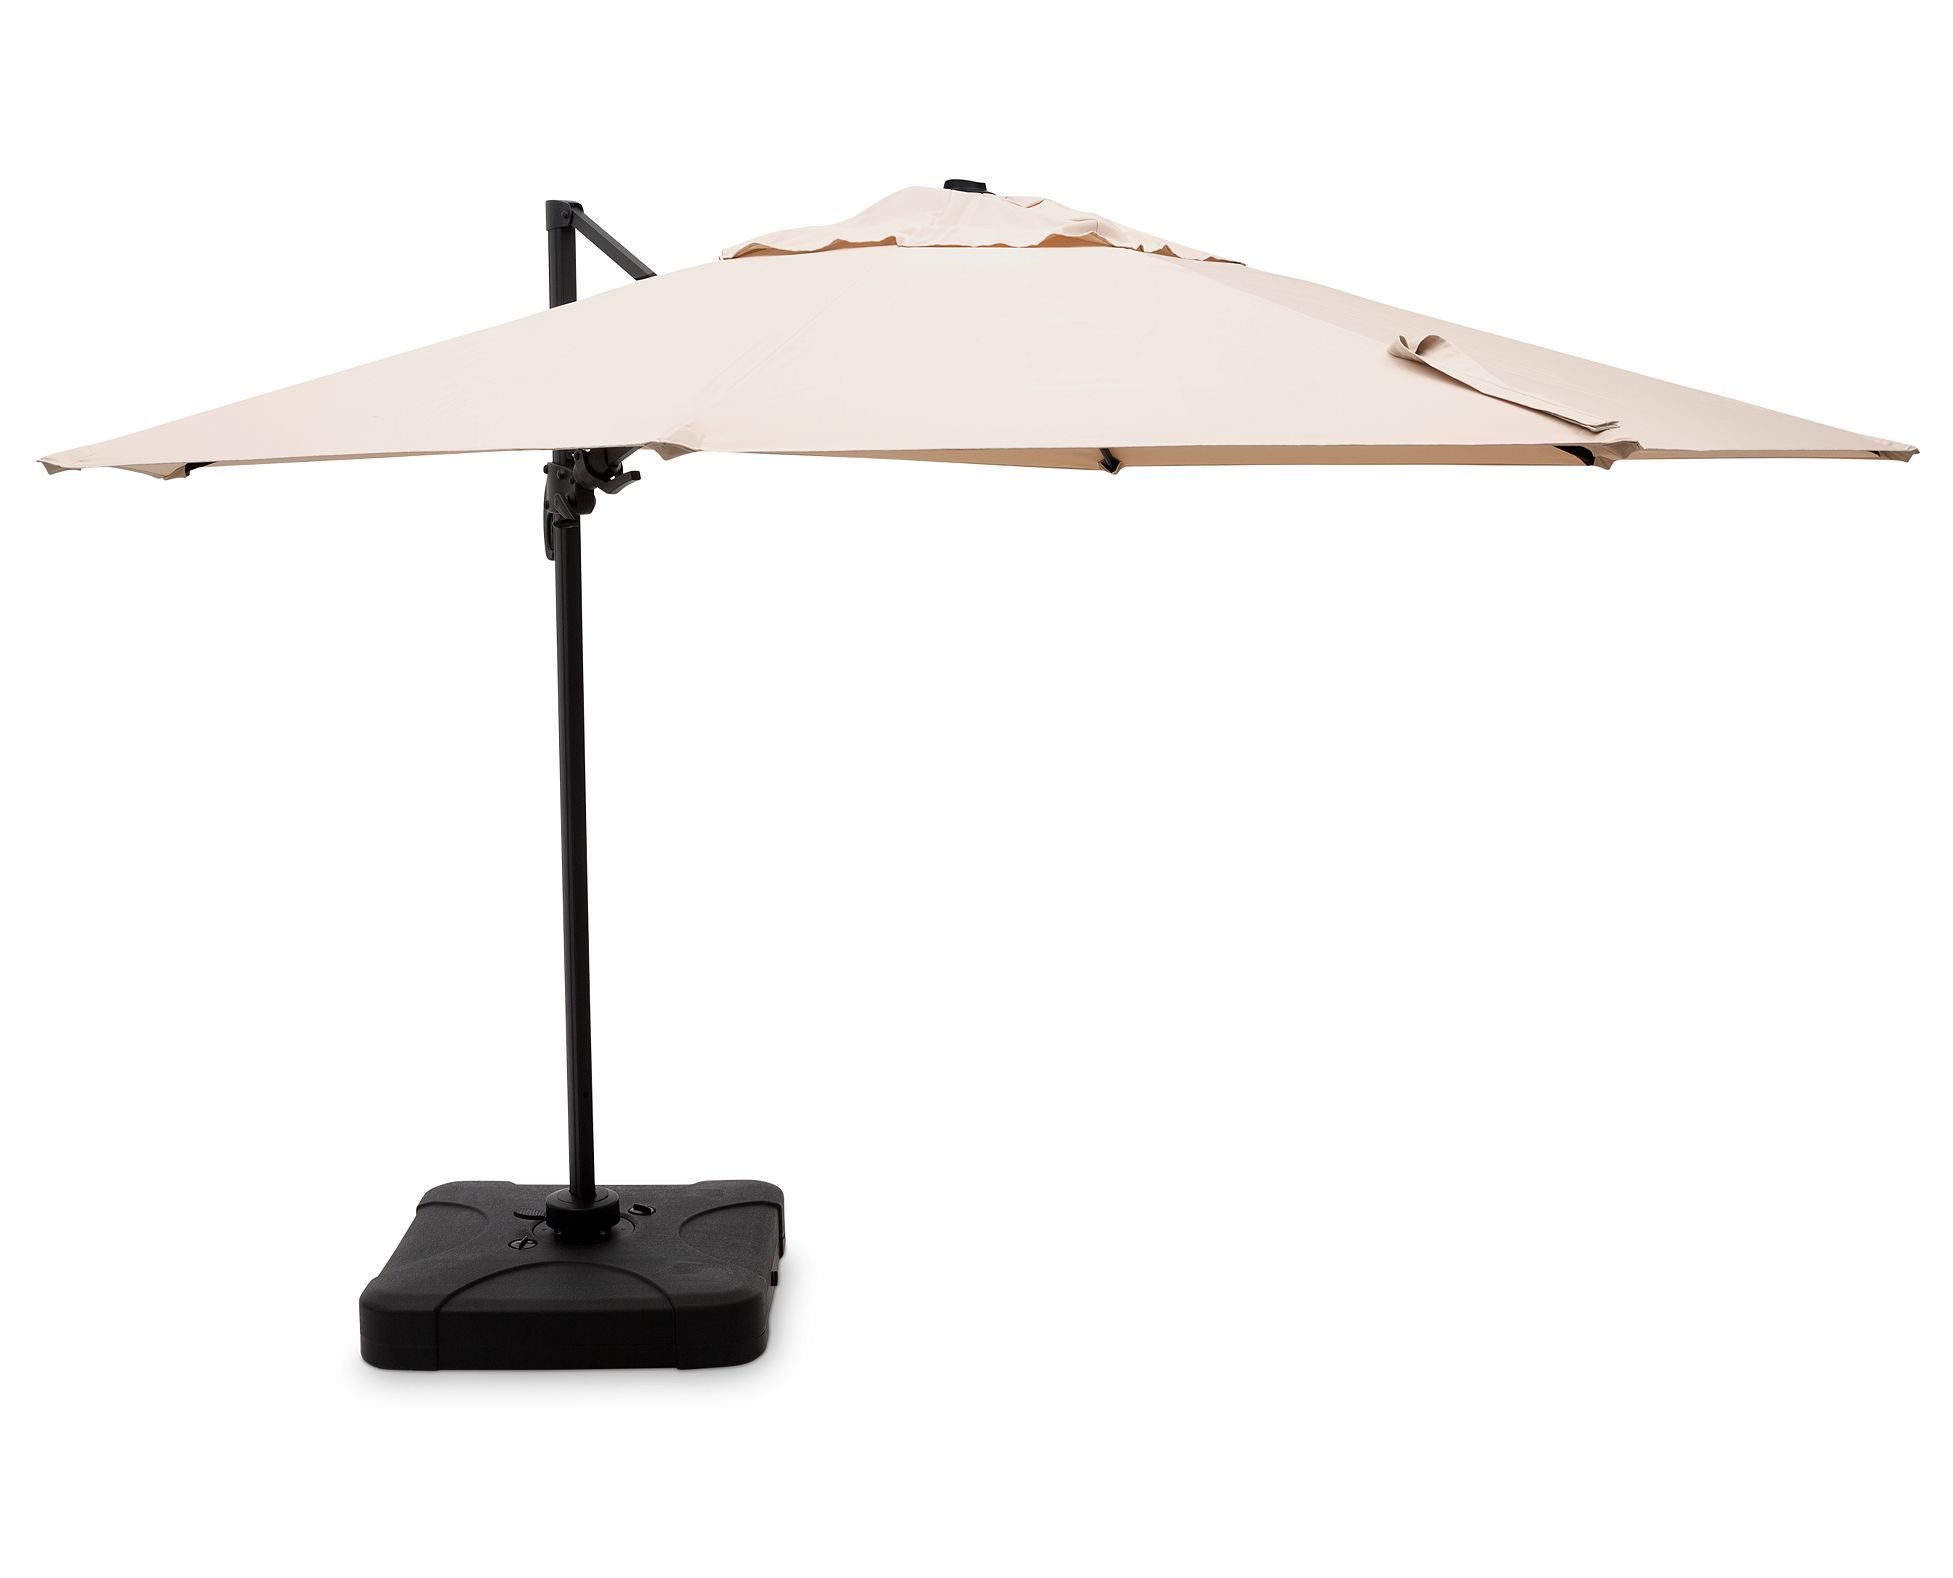 Trasimeno 11 Ft Cantilever Umbrella With Stand Is Discounted At Clearance Pricing While Supplies Last C Patio Umbrella Rectangular Patio Umbrella Umbrella